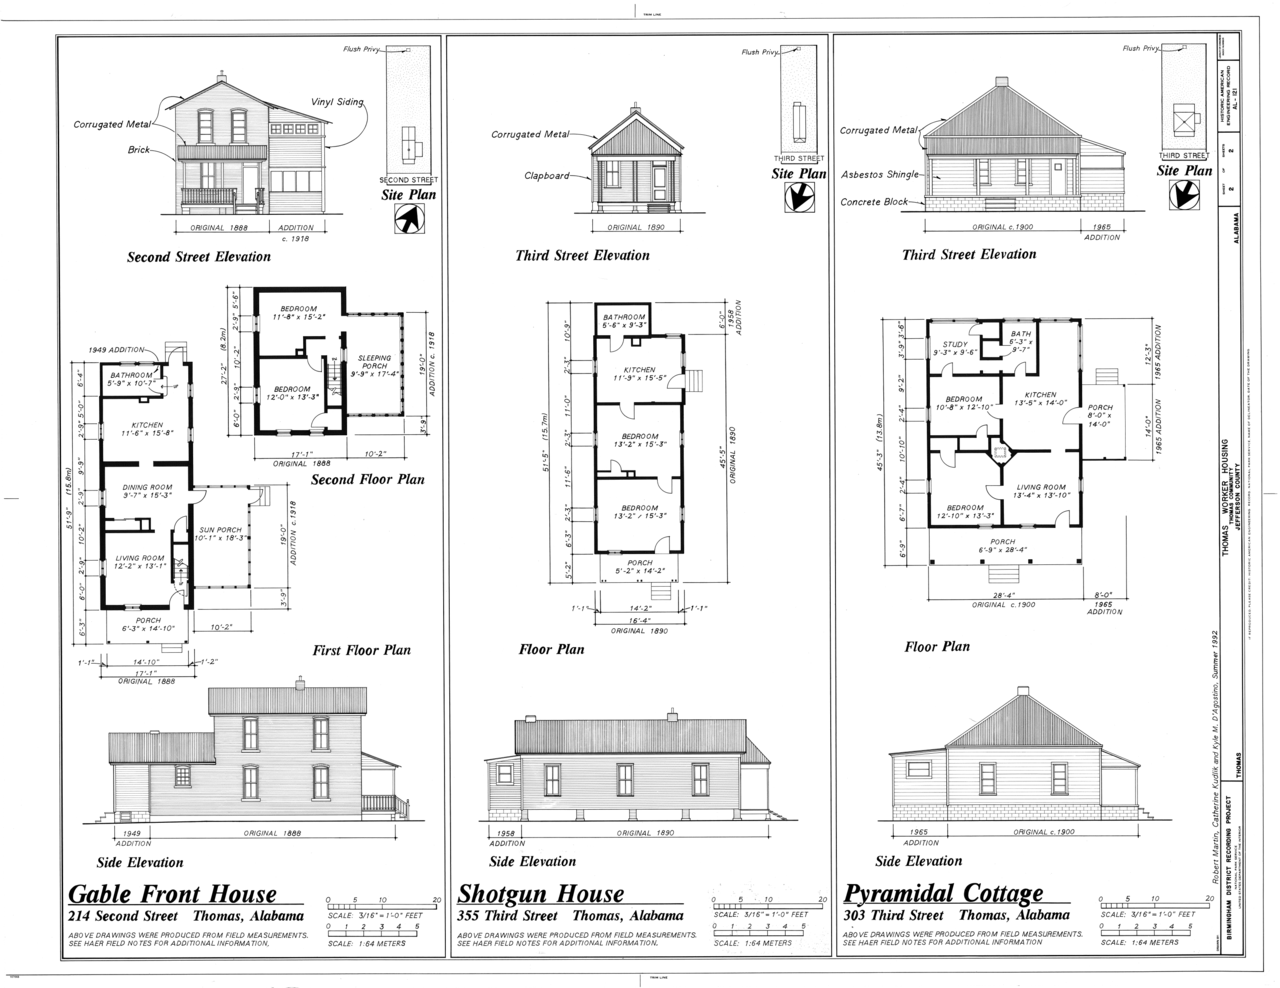 File Gable Front House Shotgun House And Pyramidal